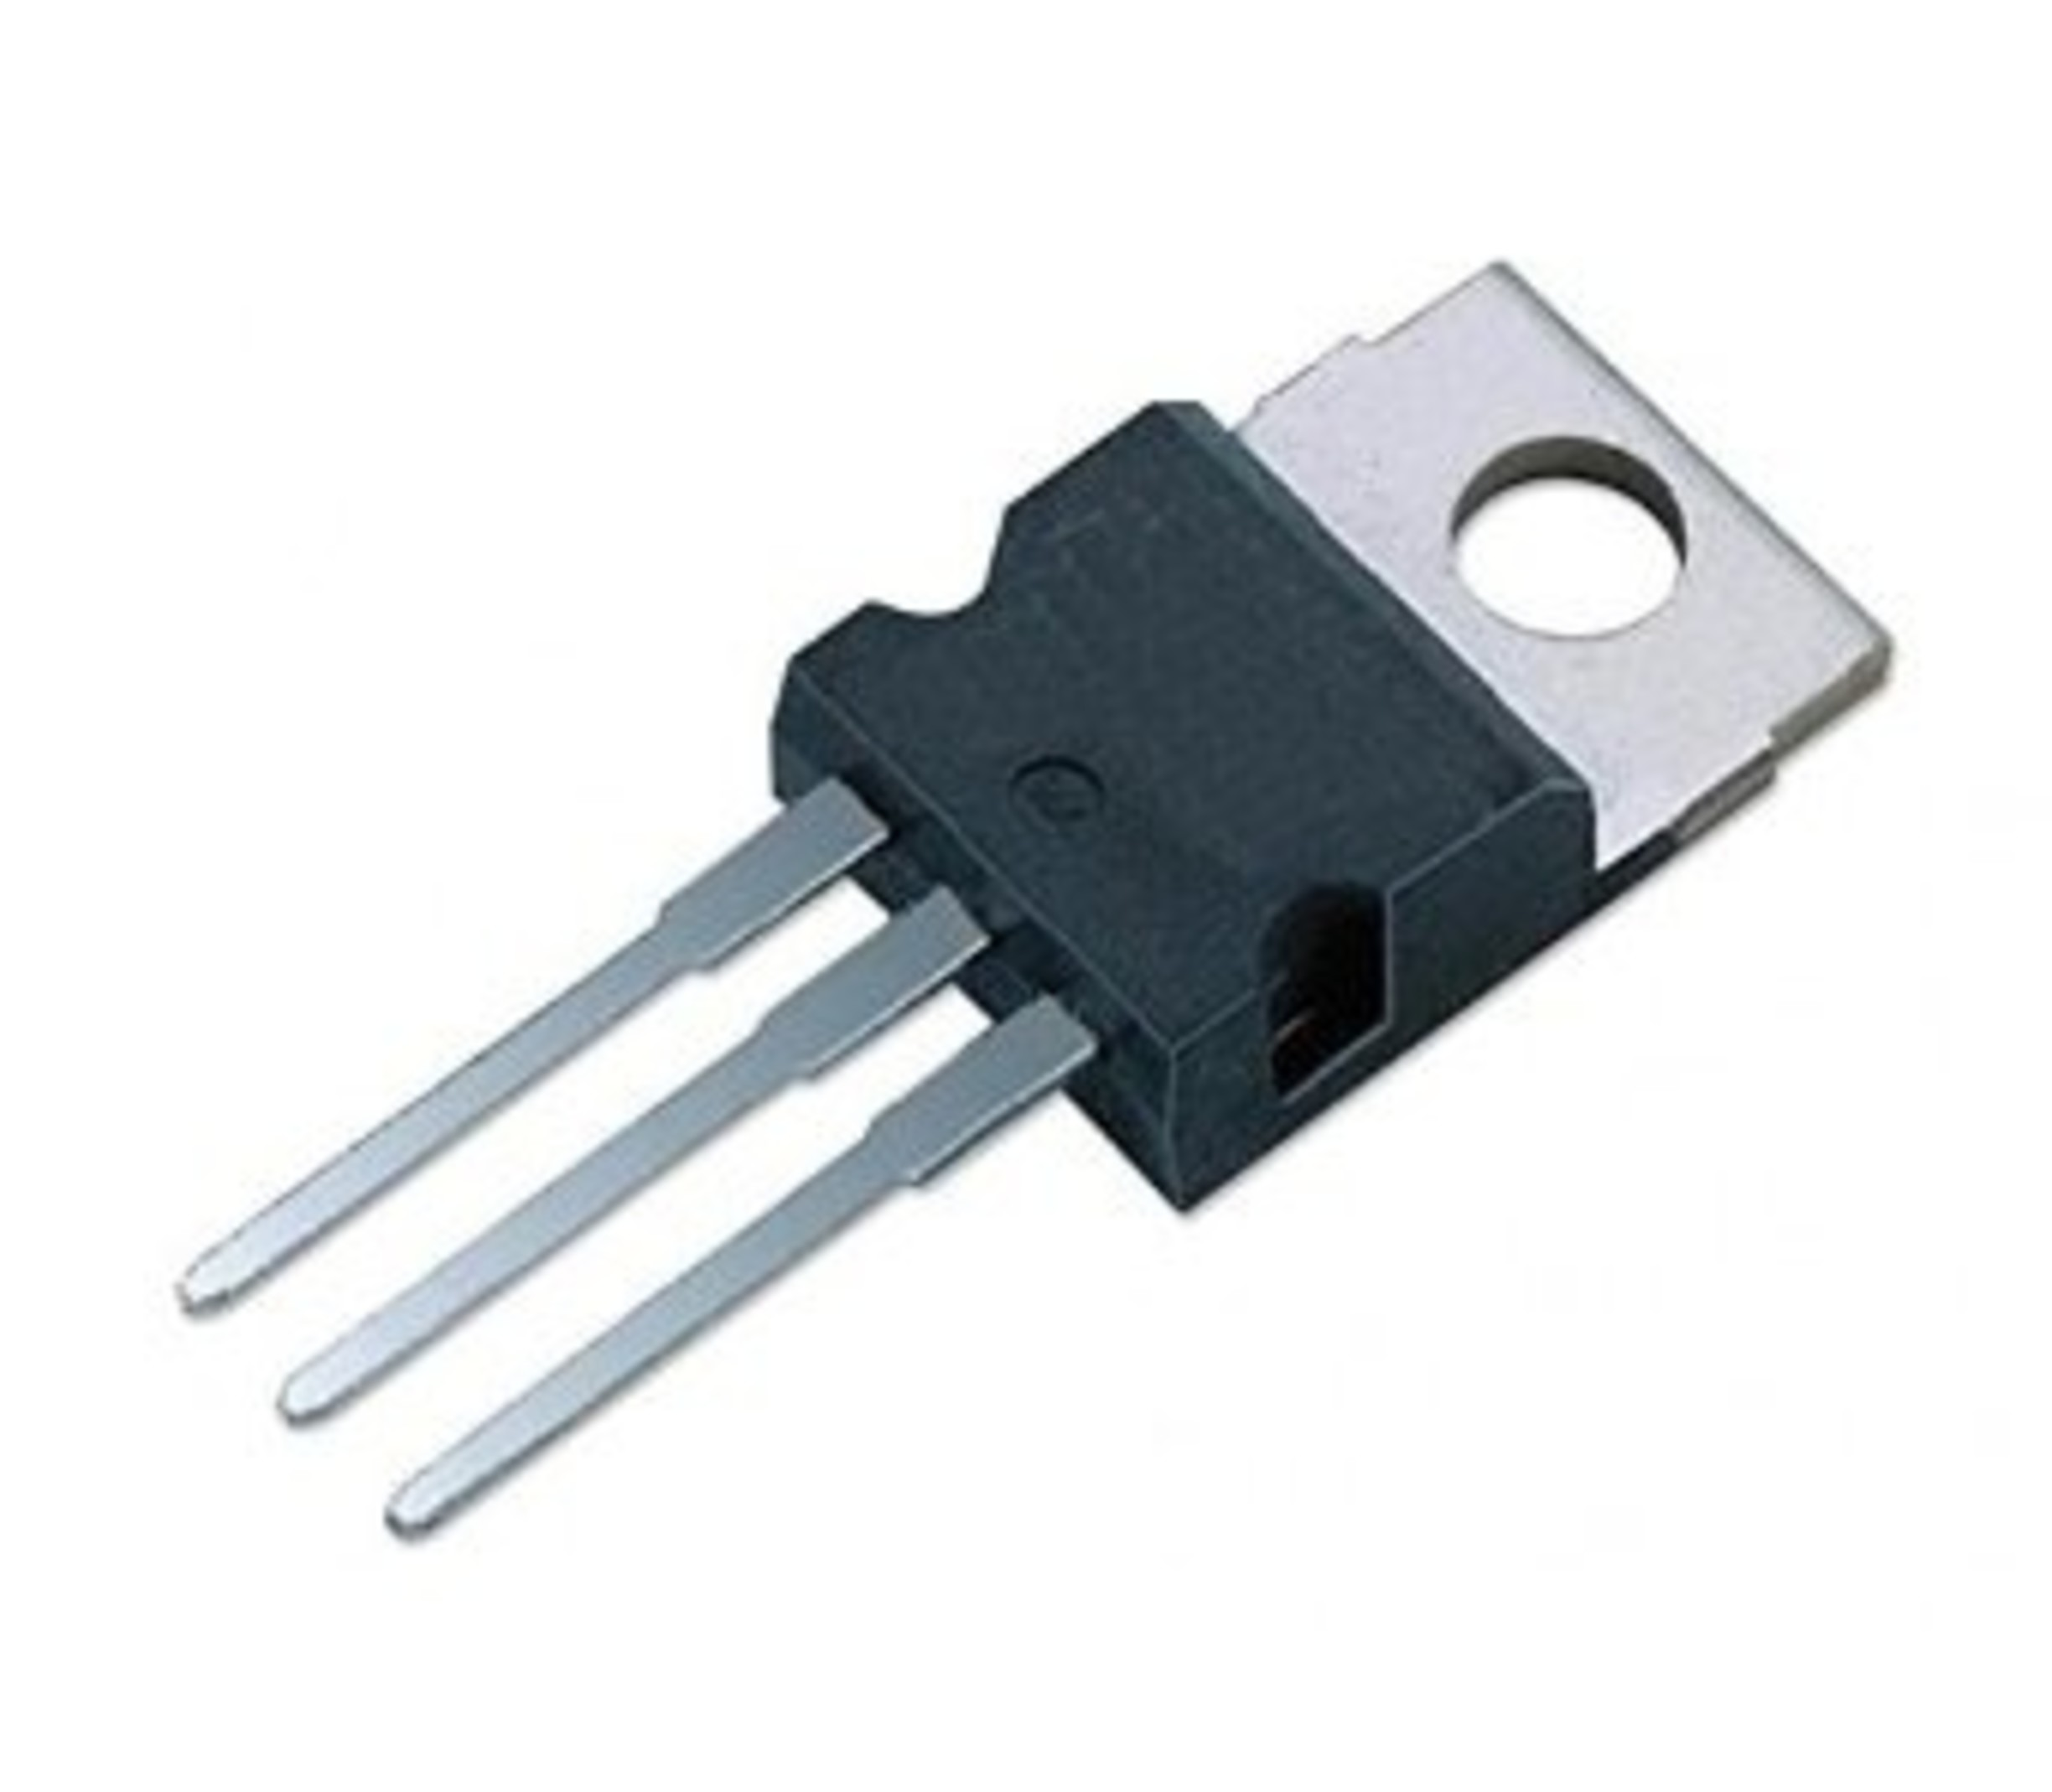 IRL7833 N-channel Mosfet